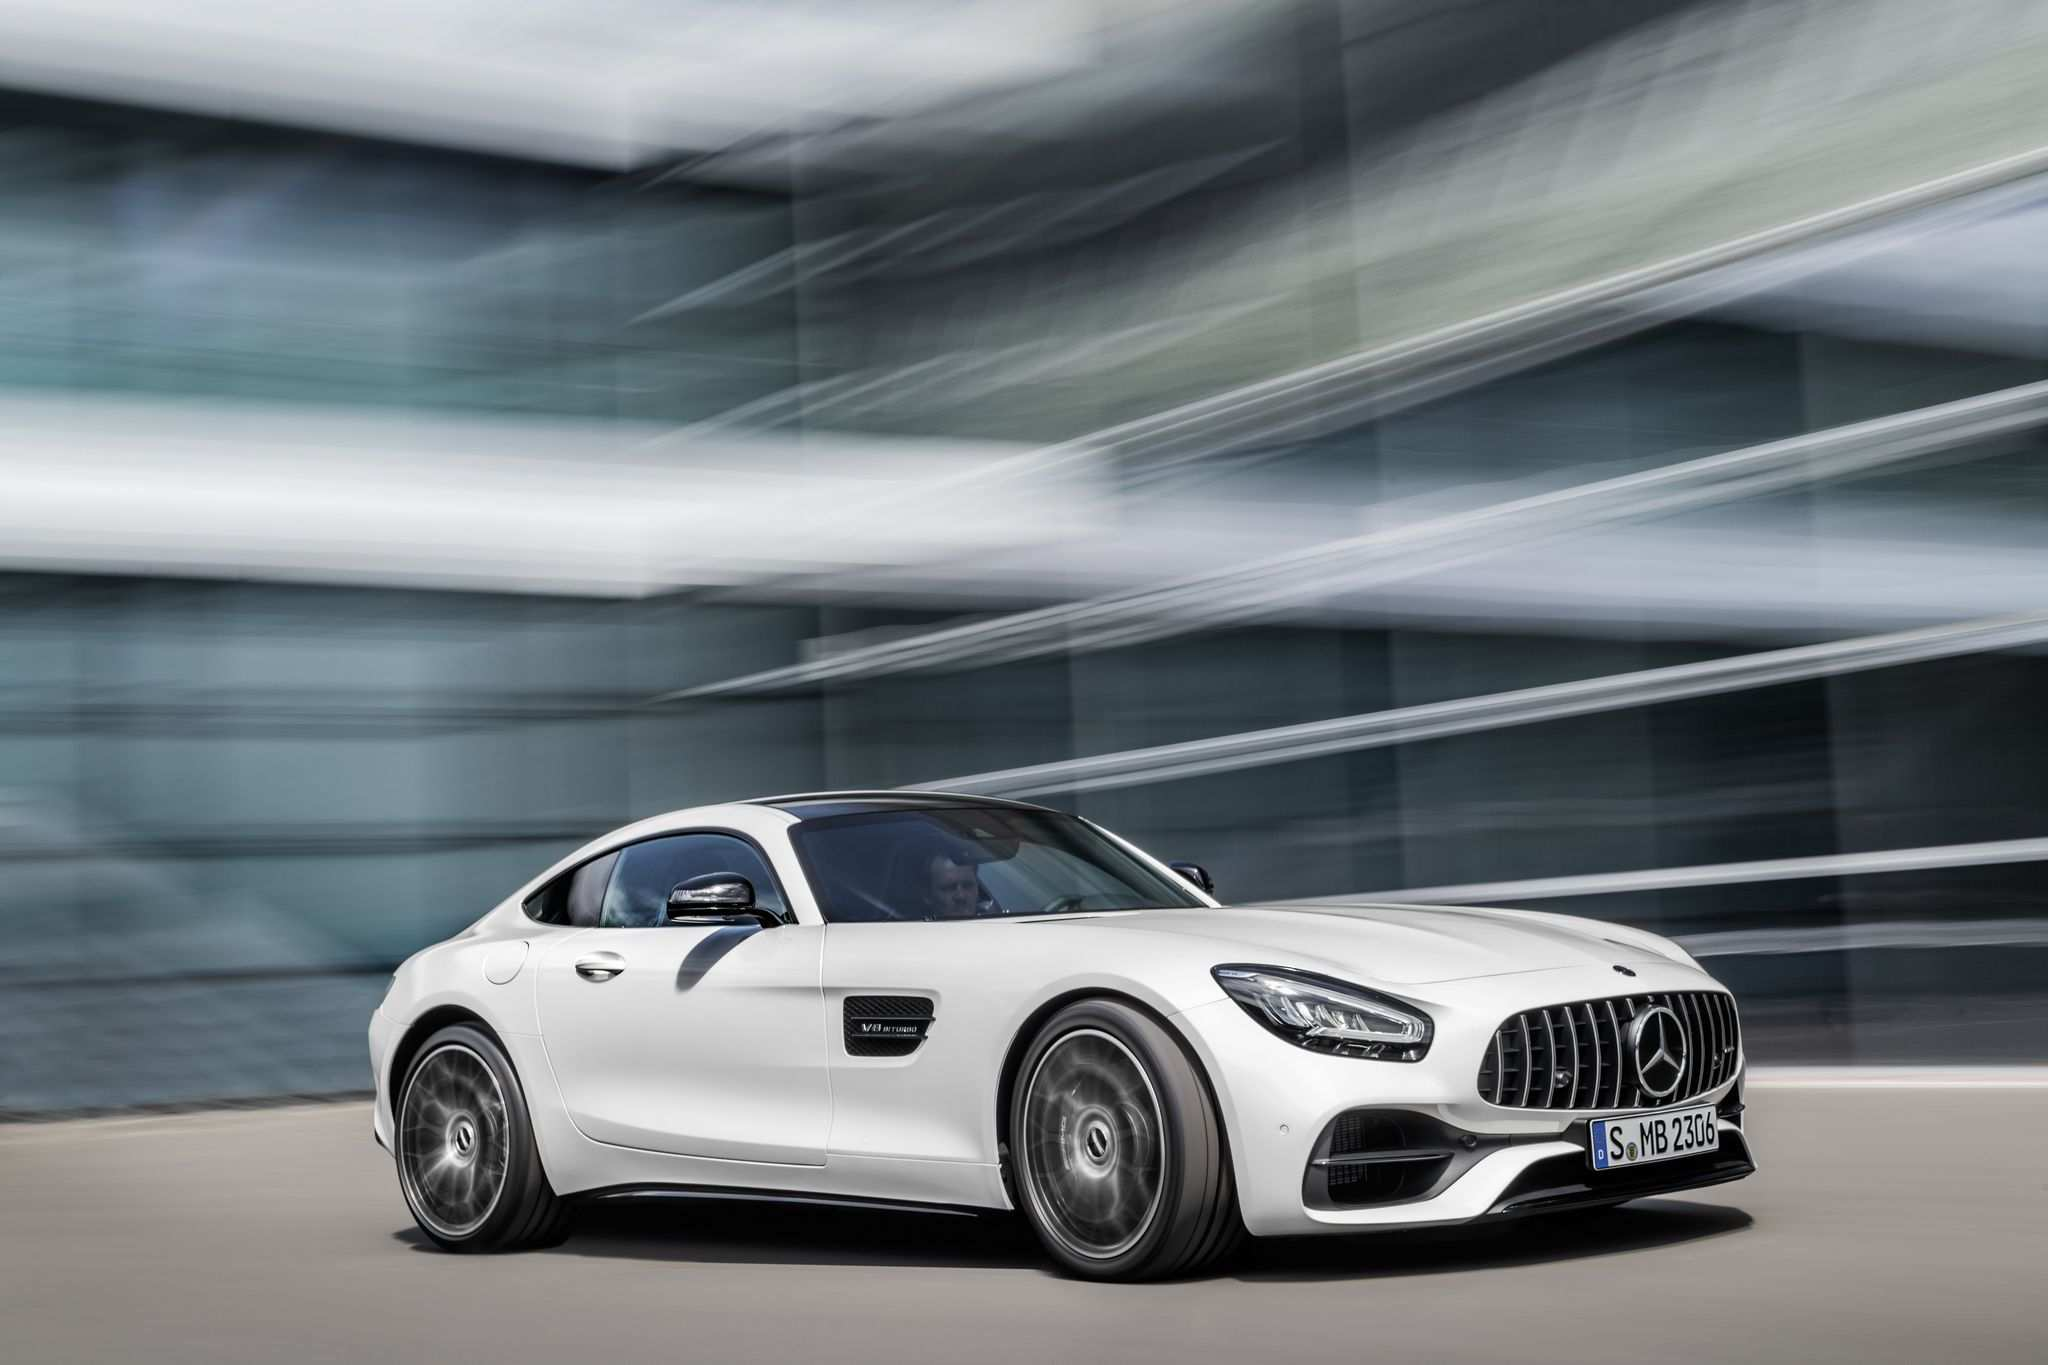 61 The Best Mercedes Gt 2019 Wallpaper